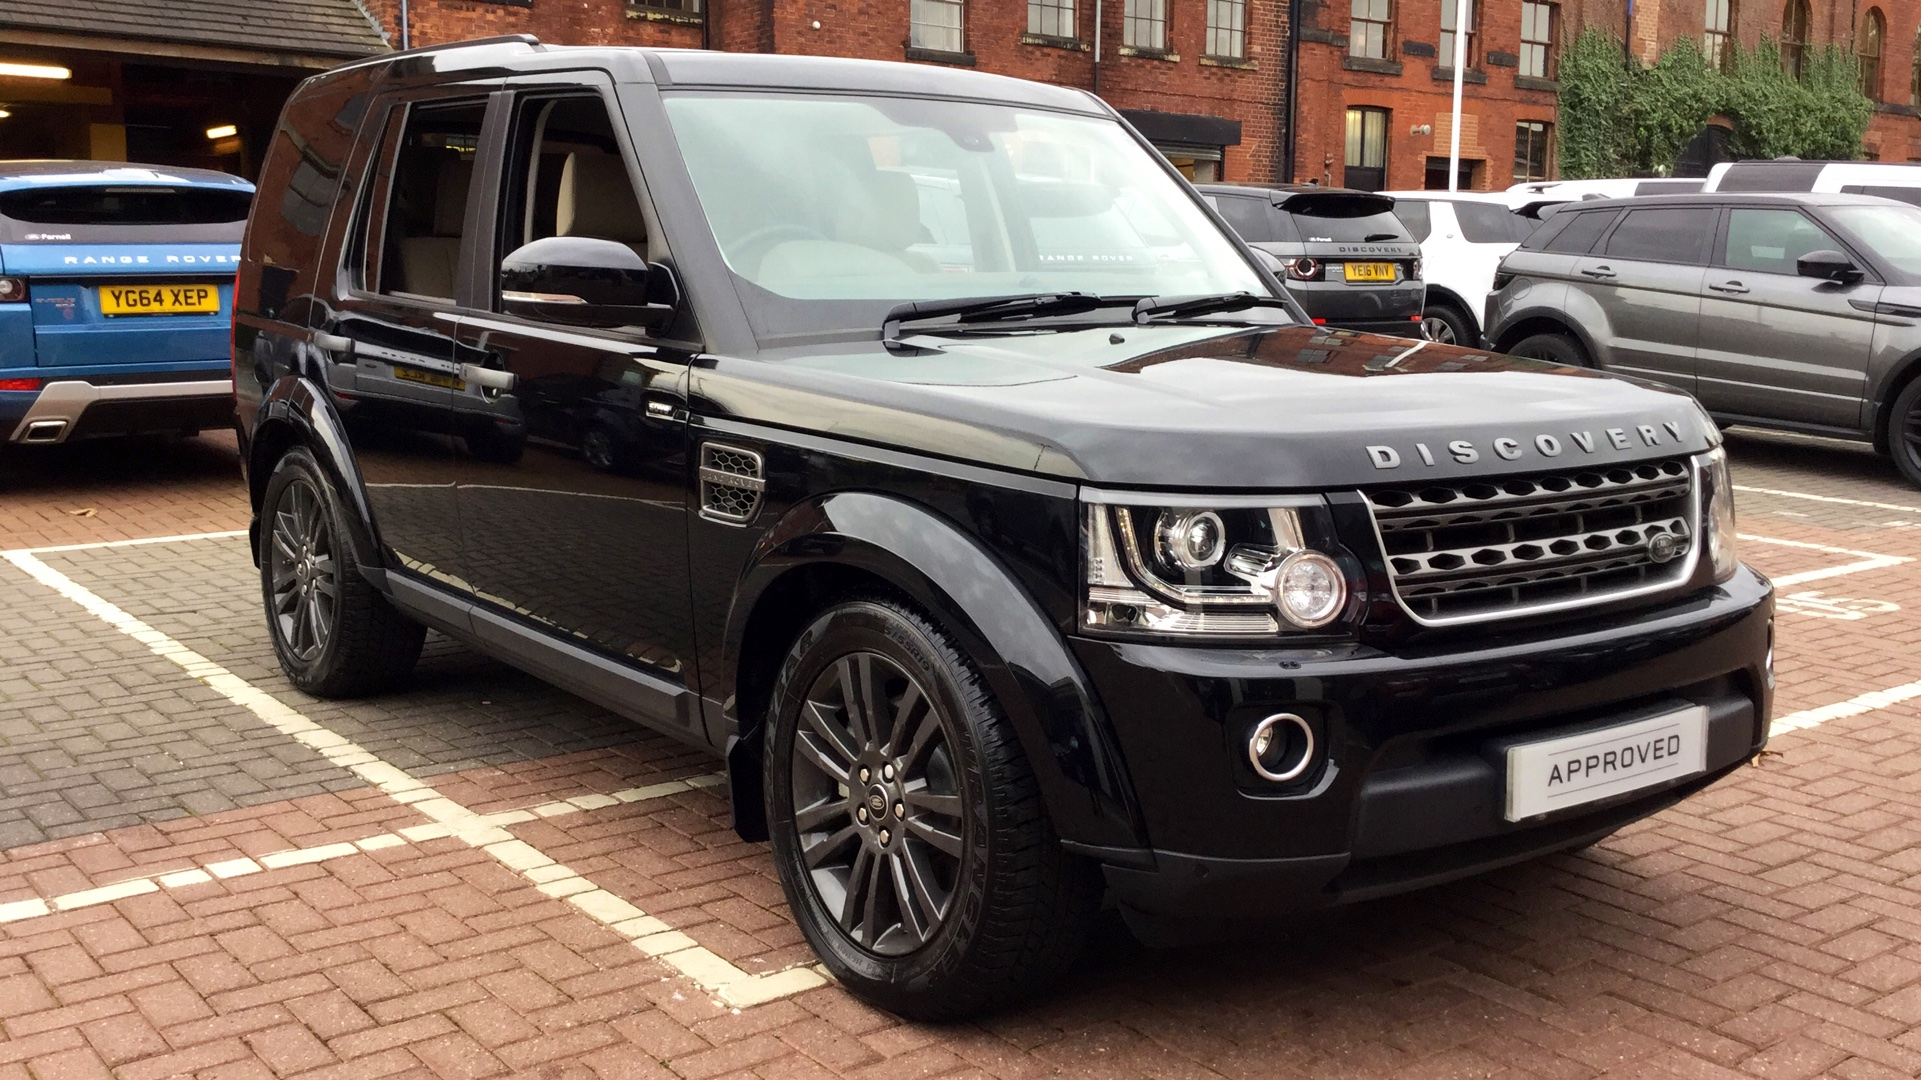 Used Land Rover Discovery 3 0 Sdv6 Graphite 5Dr Auto Diesel